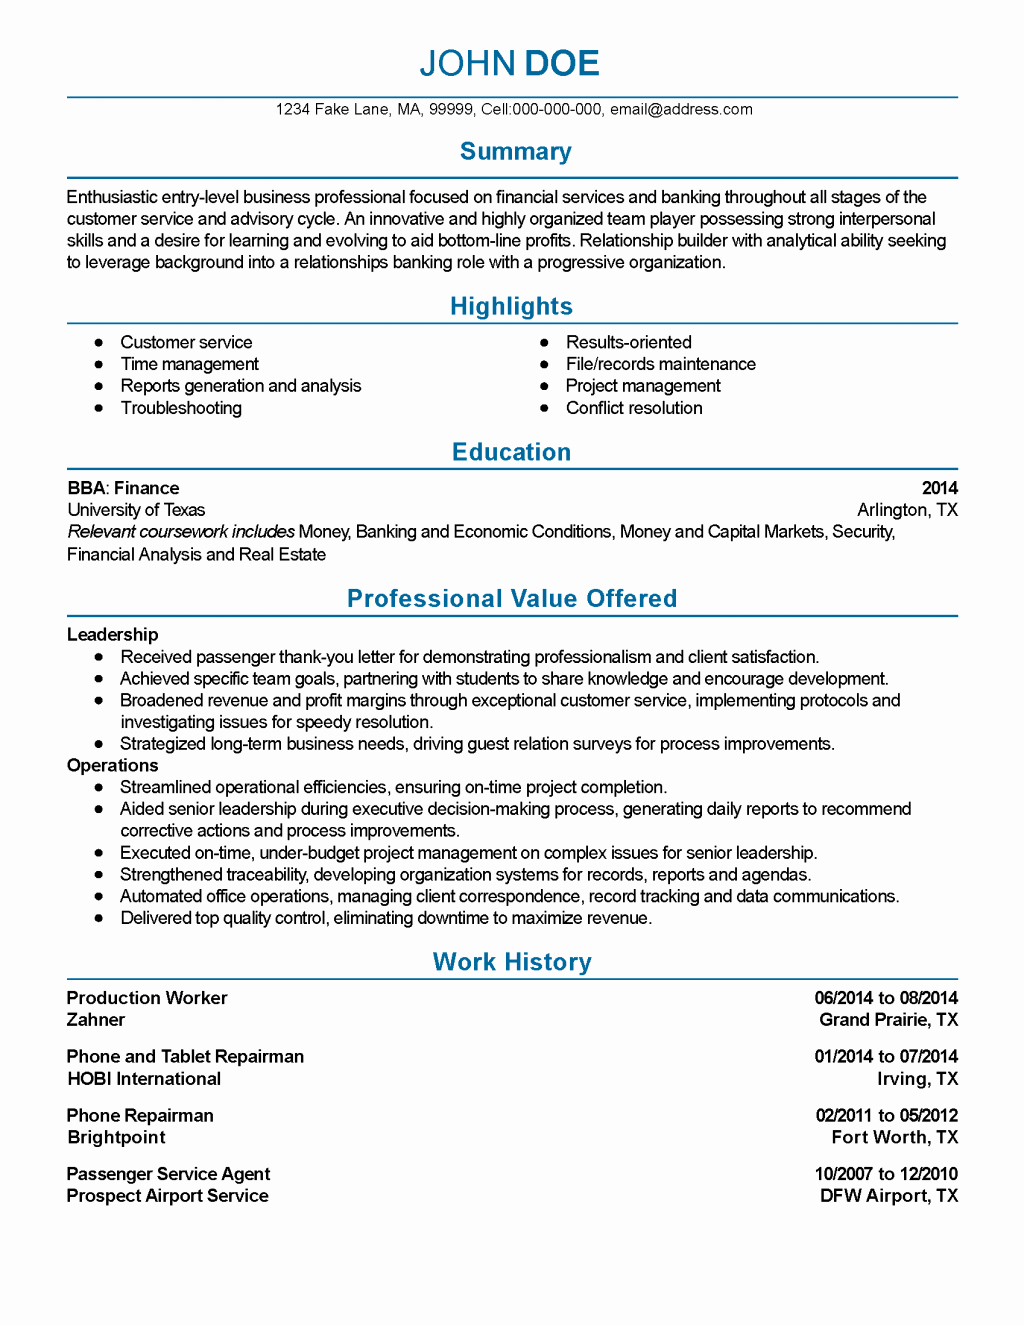 Letter to Investors Template - Bank Teller Objective Resume Beautiful Sample Investment Banking